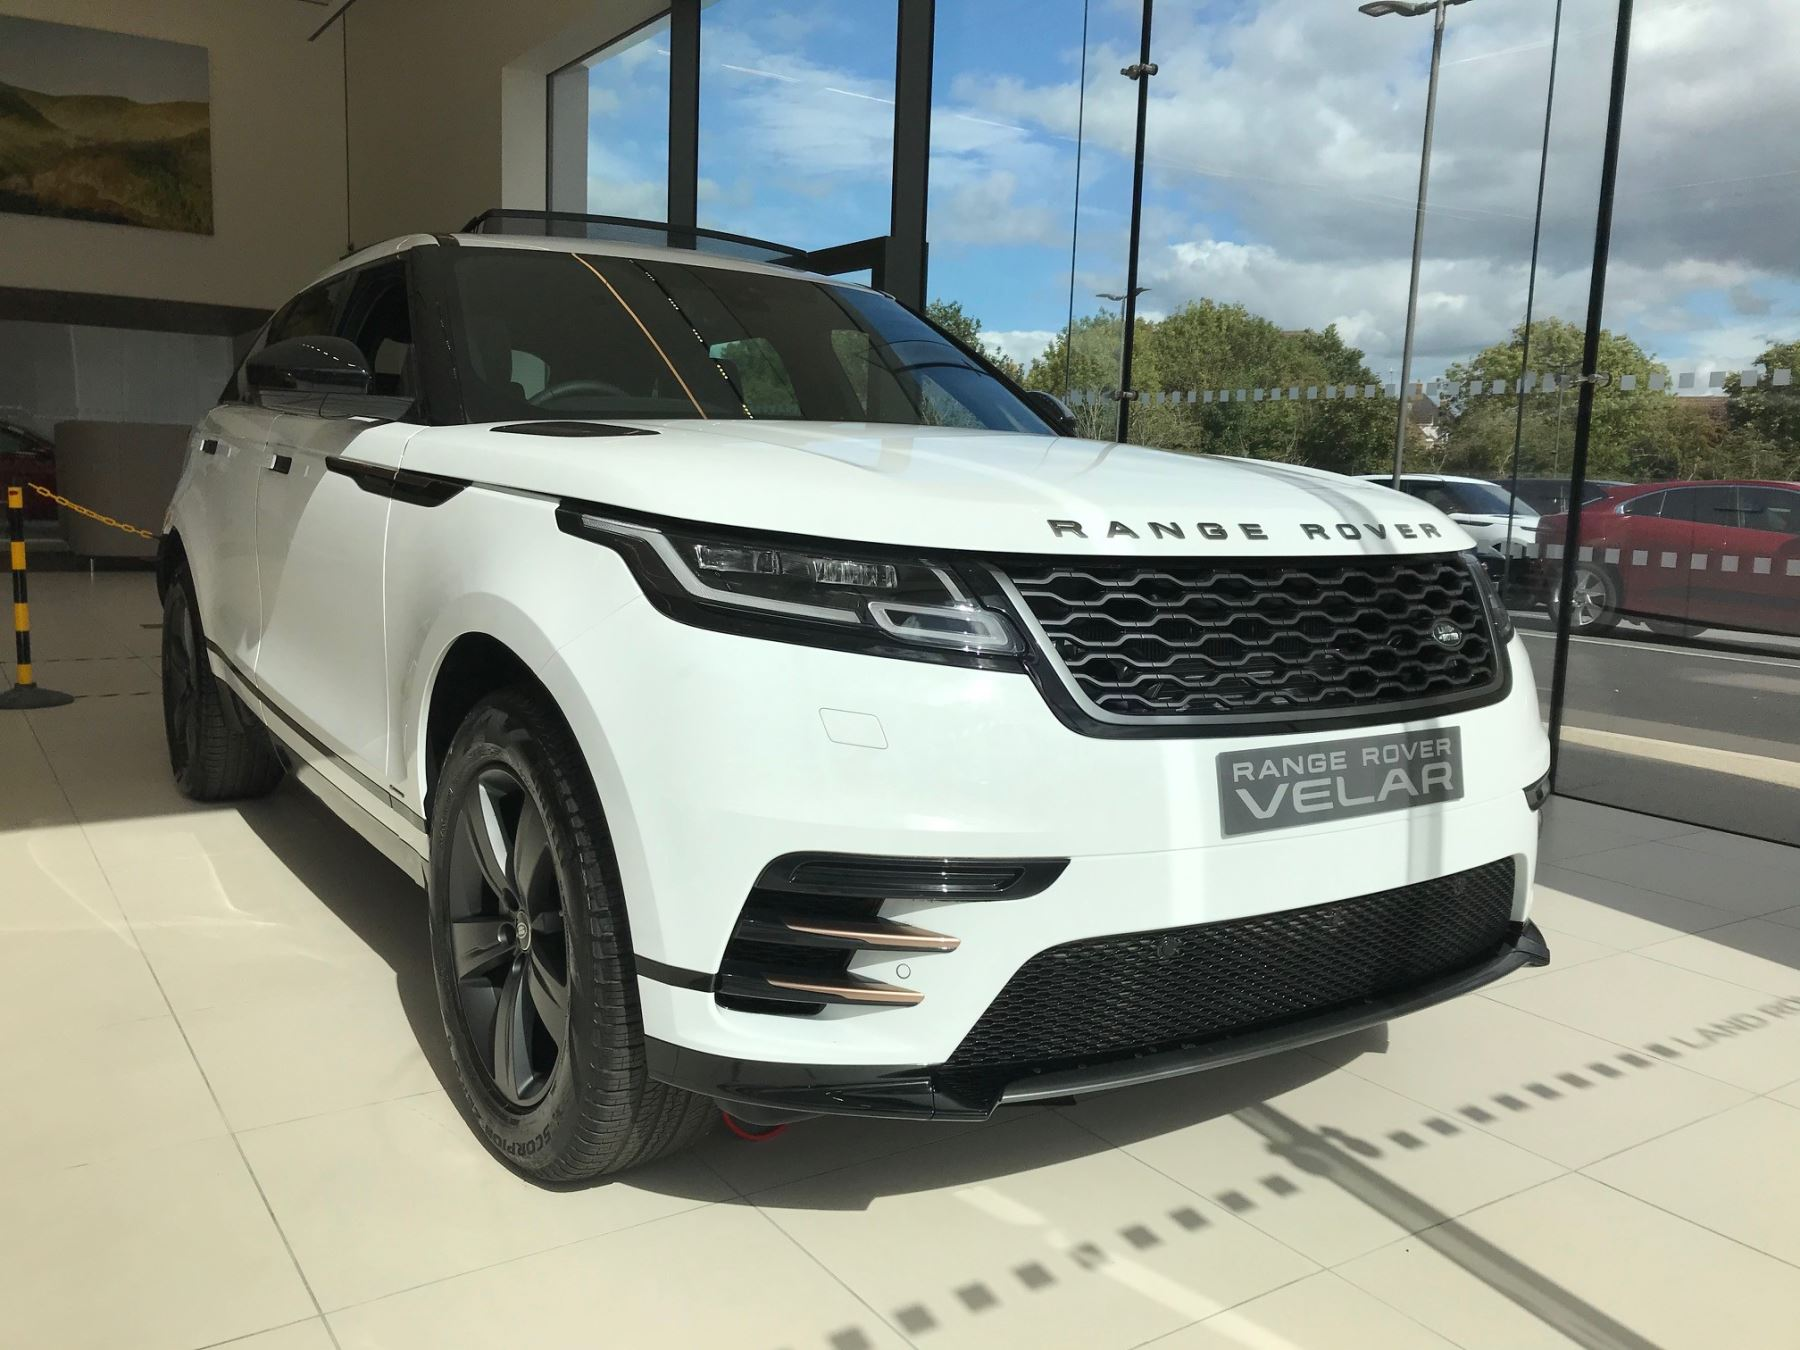 Land Rover Range Rover Velar 2.0 D180 R-Dynamic S Diesel Automatic 5 door Estate